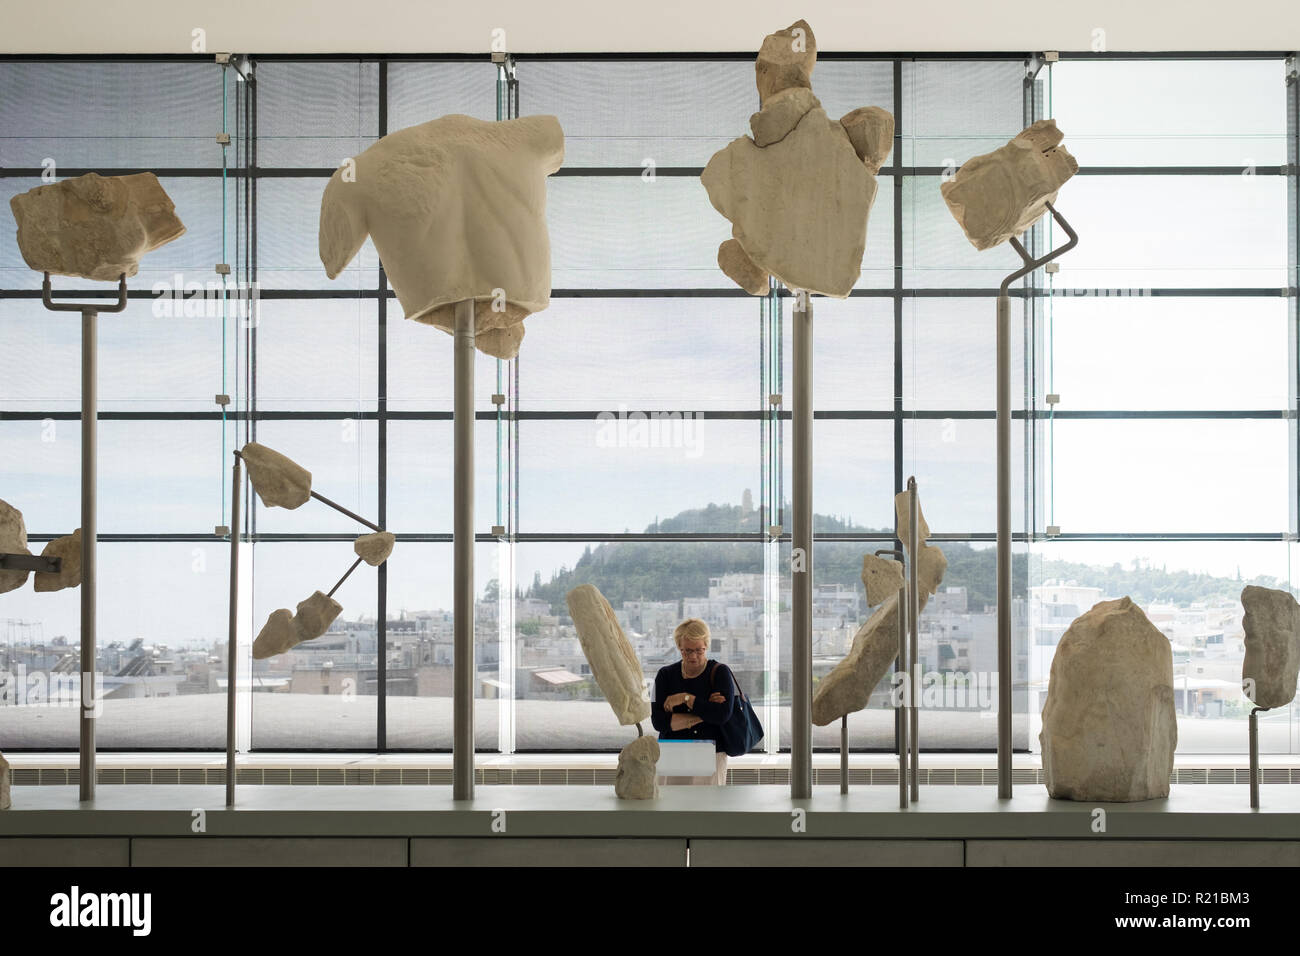 A tourist views the west pediment of the Parthenon in the Acropolis Museum in Athens, Greece Stock Photo